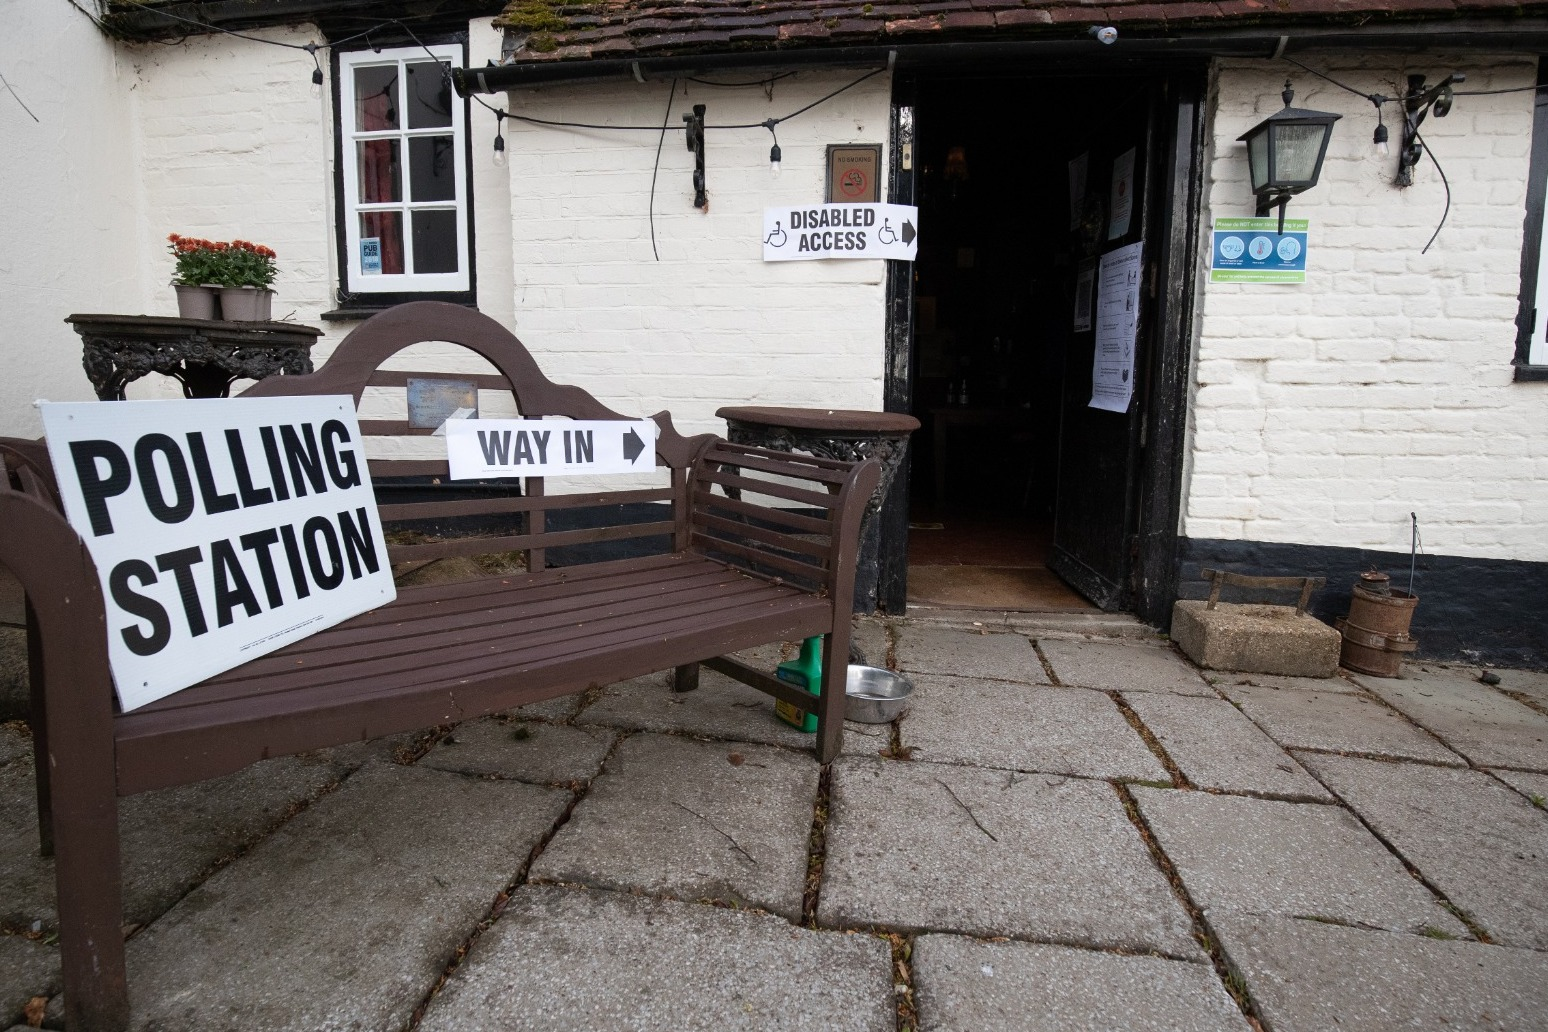 Polling stations open across Great Britain for Super Thursday